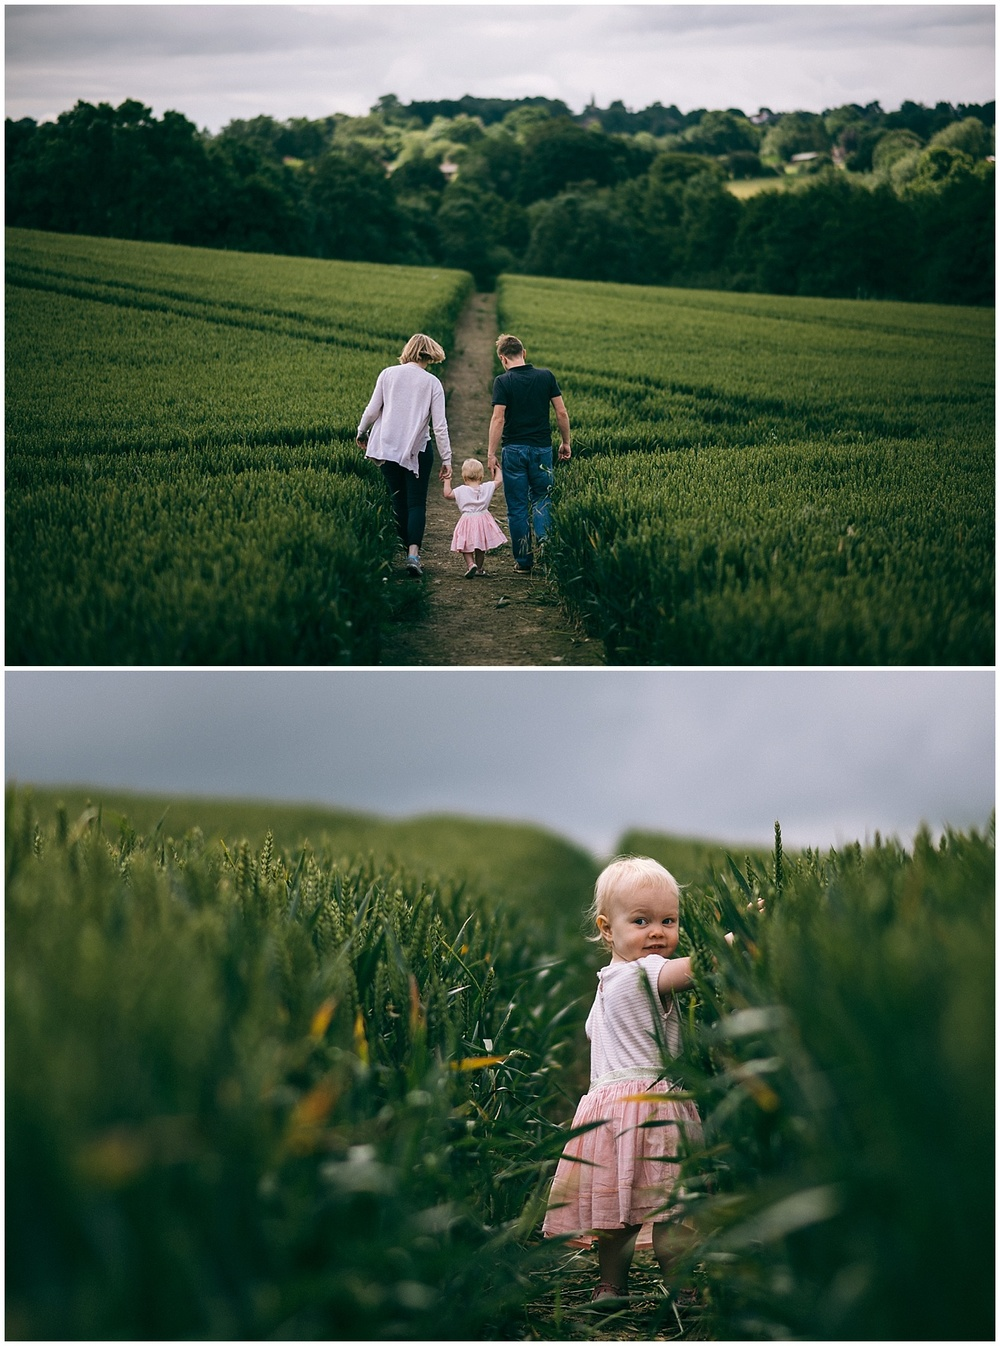 Natural family photography in exeter, devon